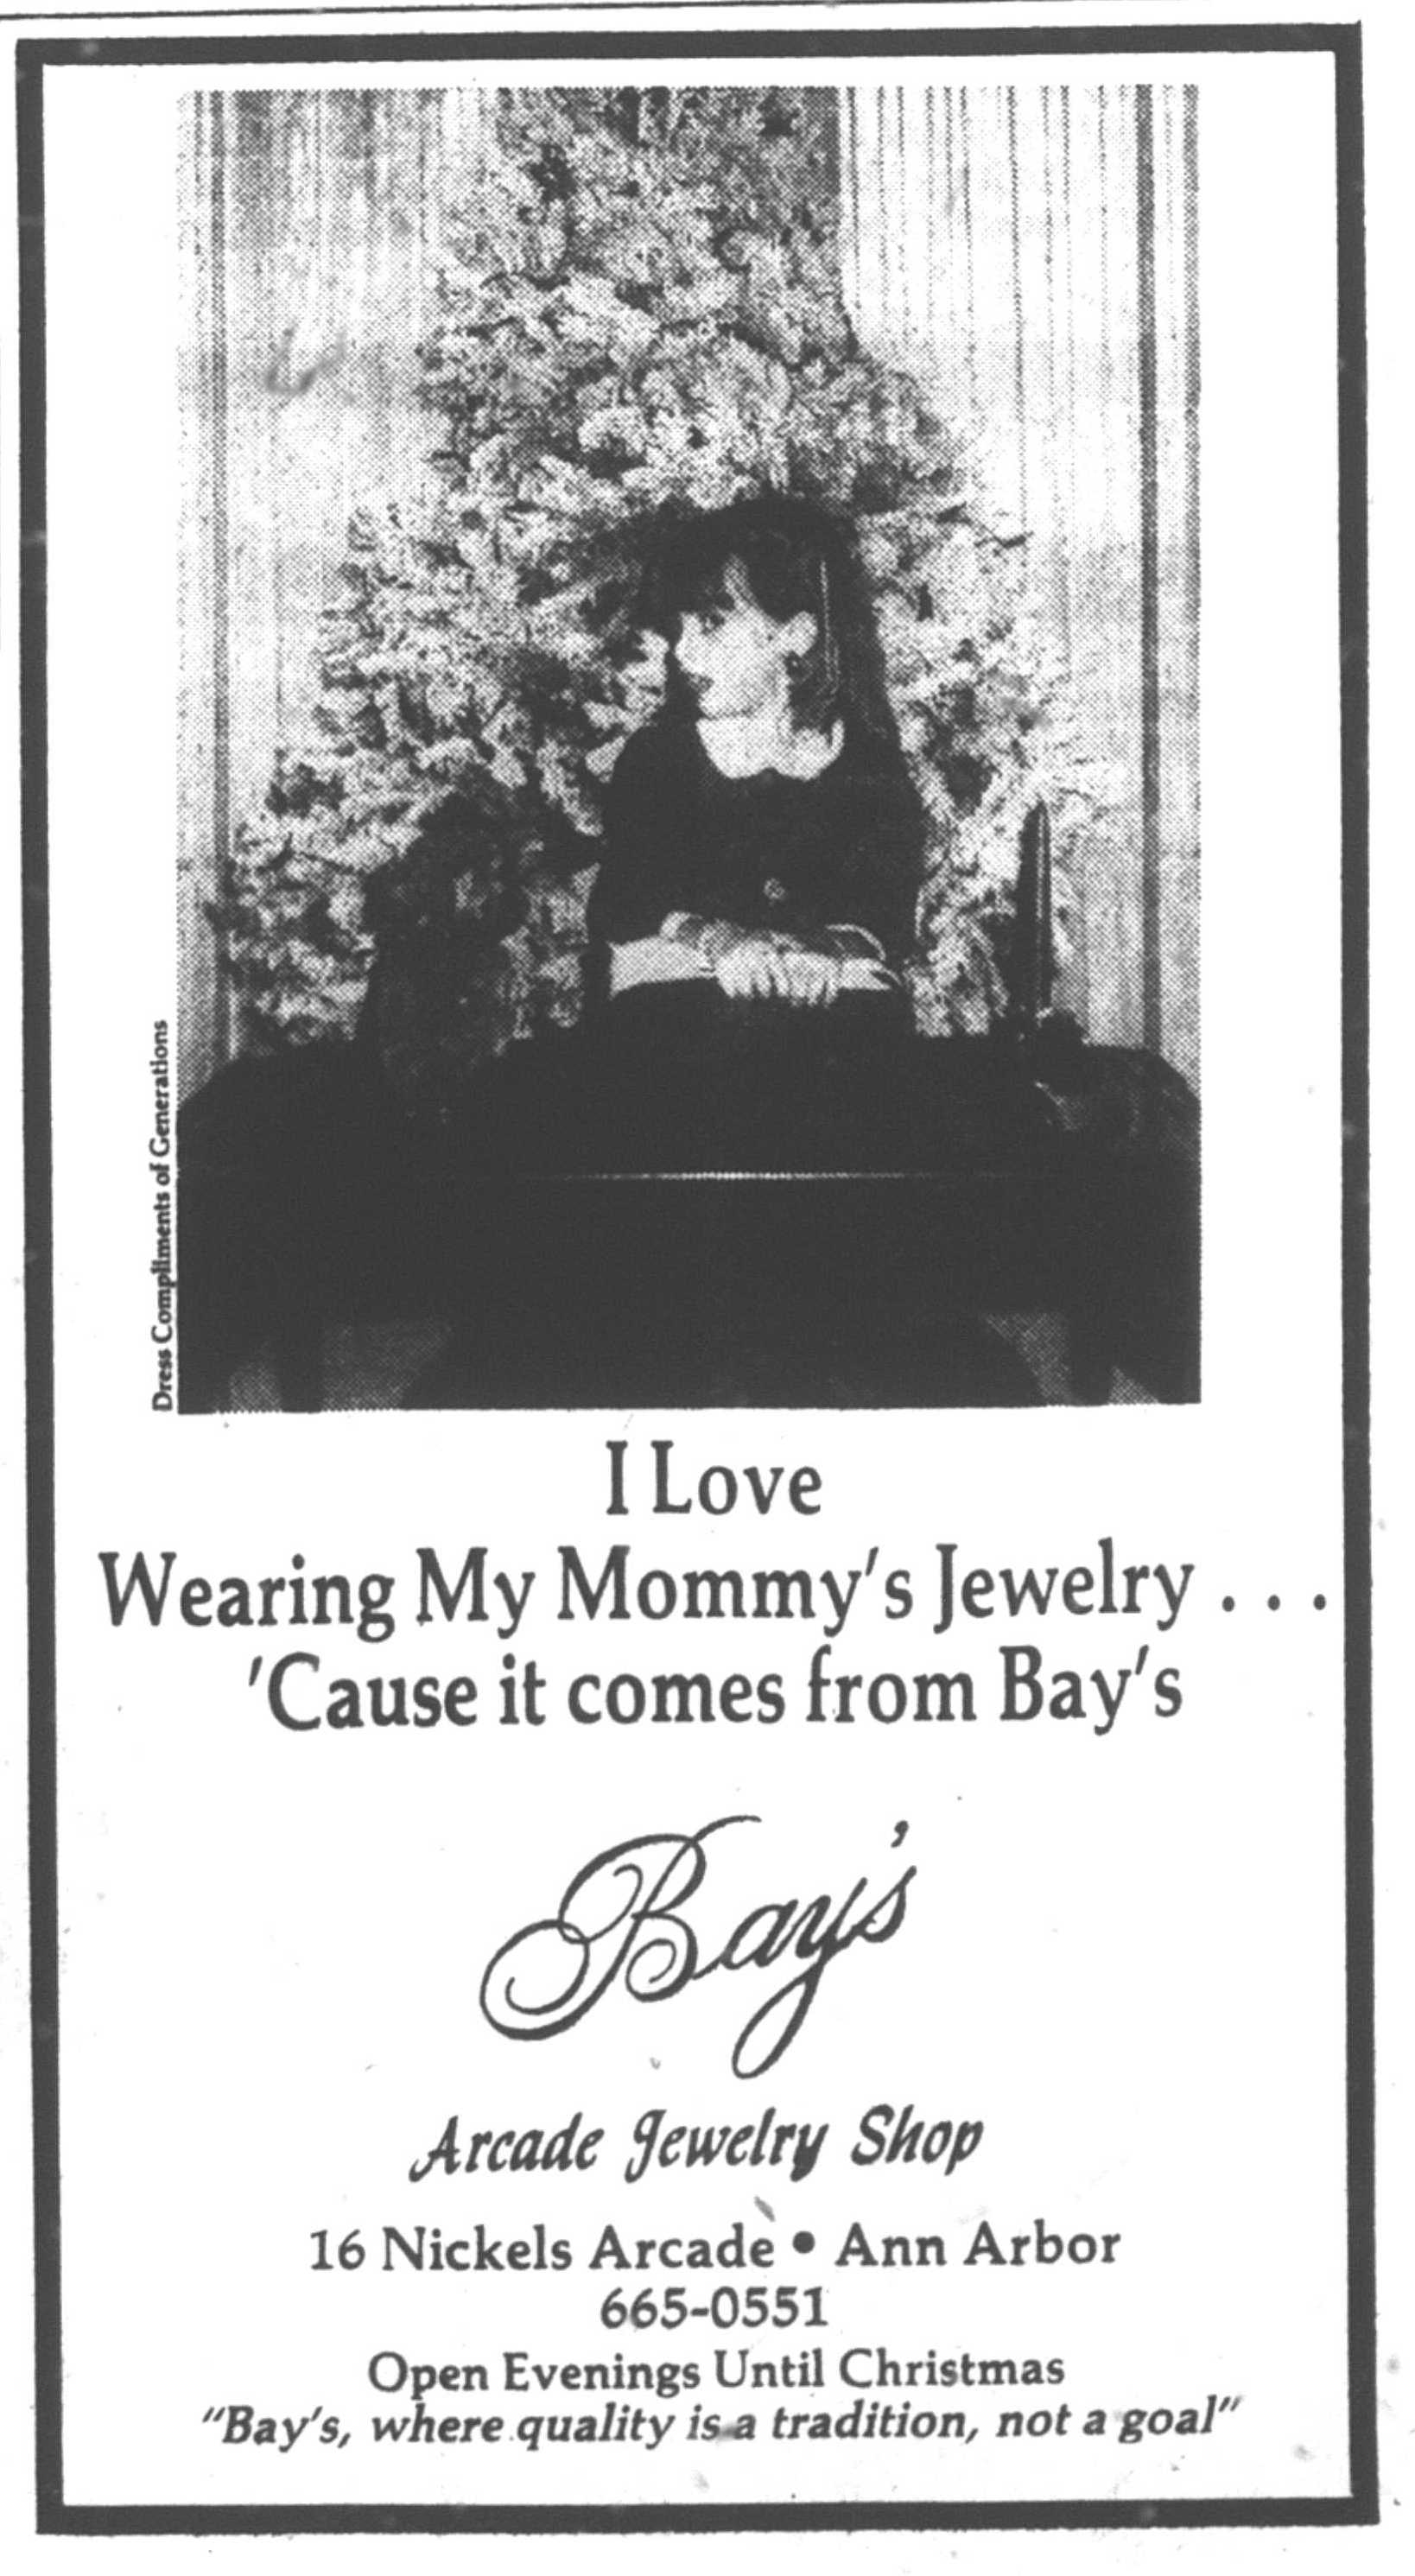 Bay's Arcade Jewelry Shop image